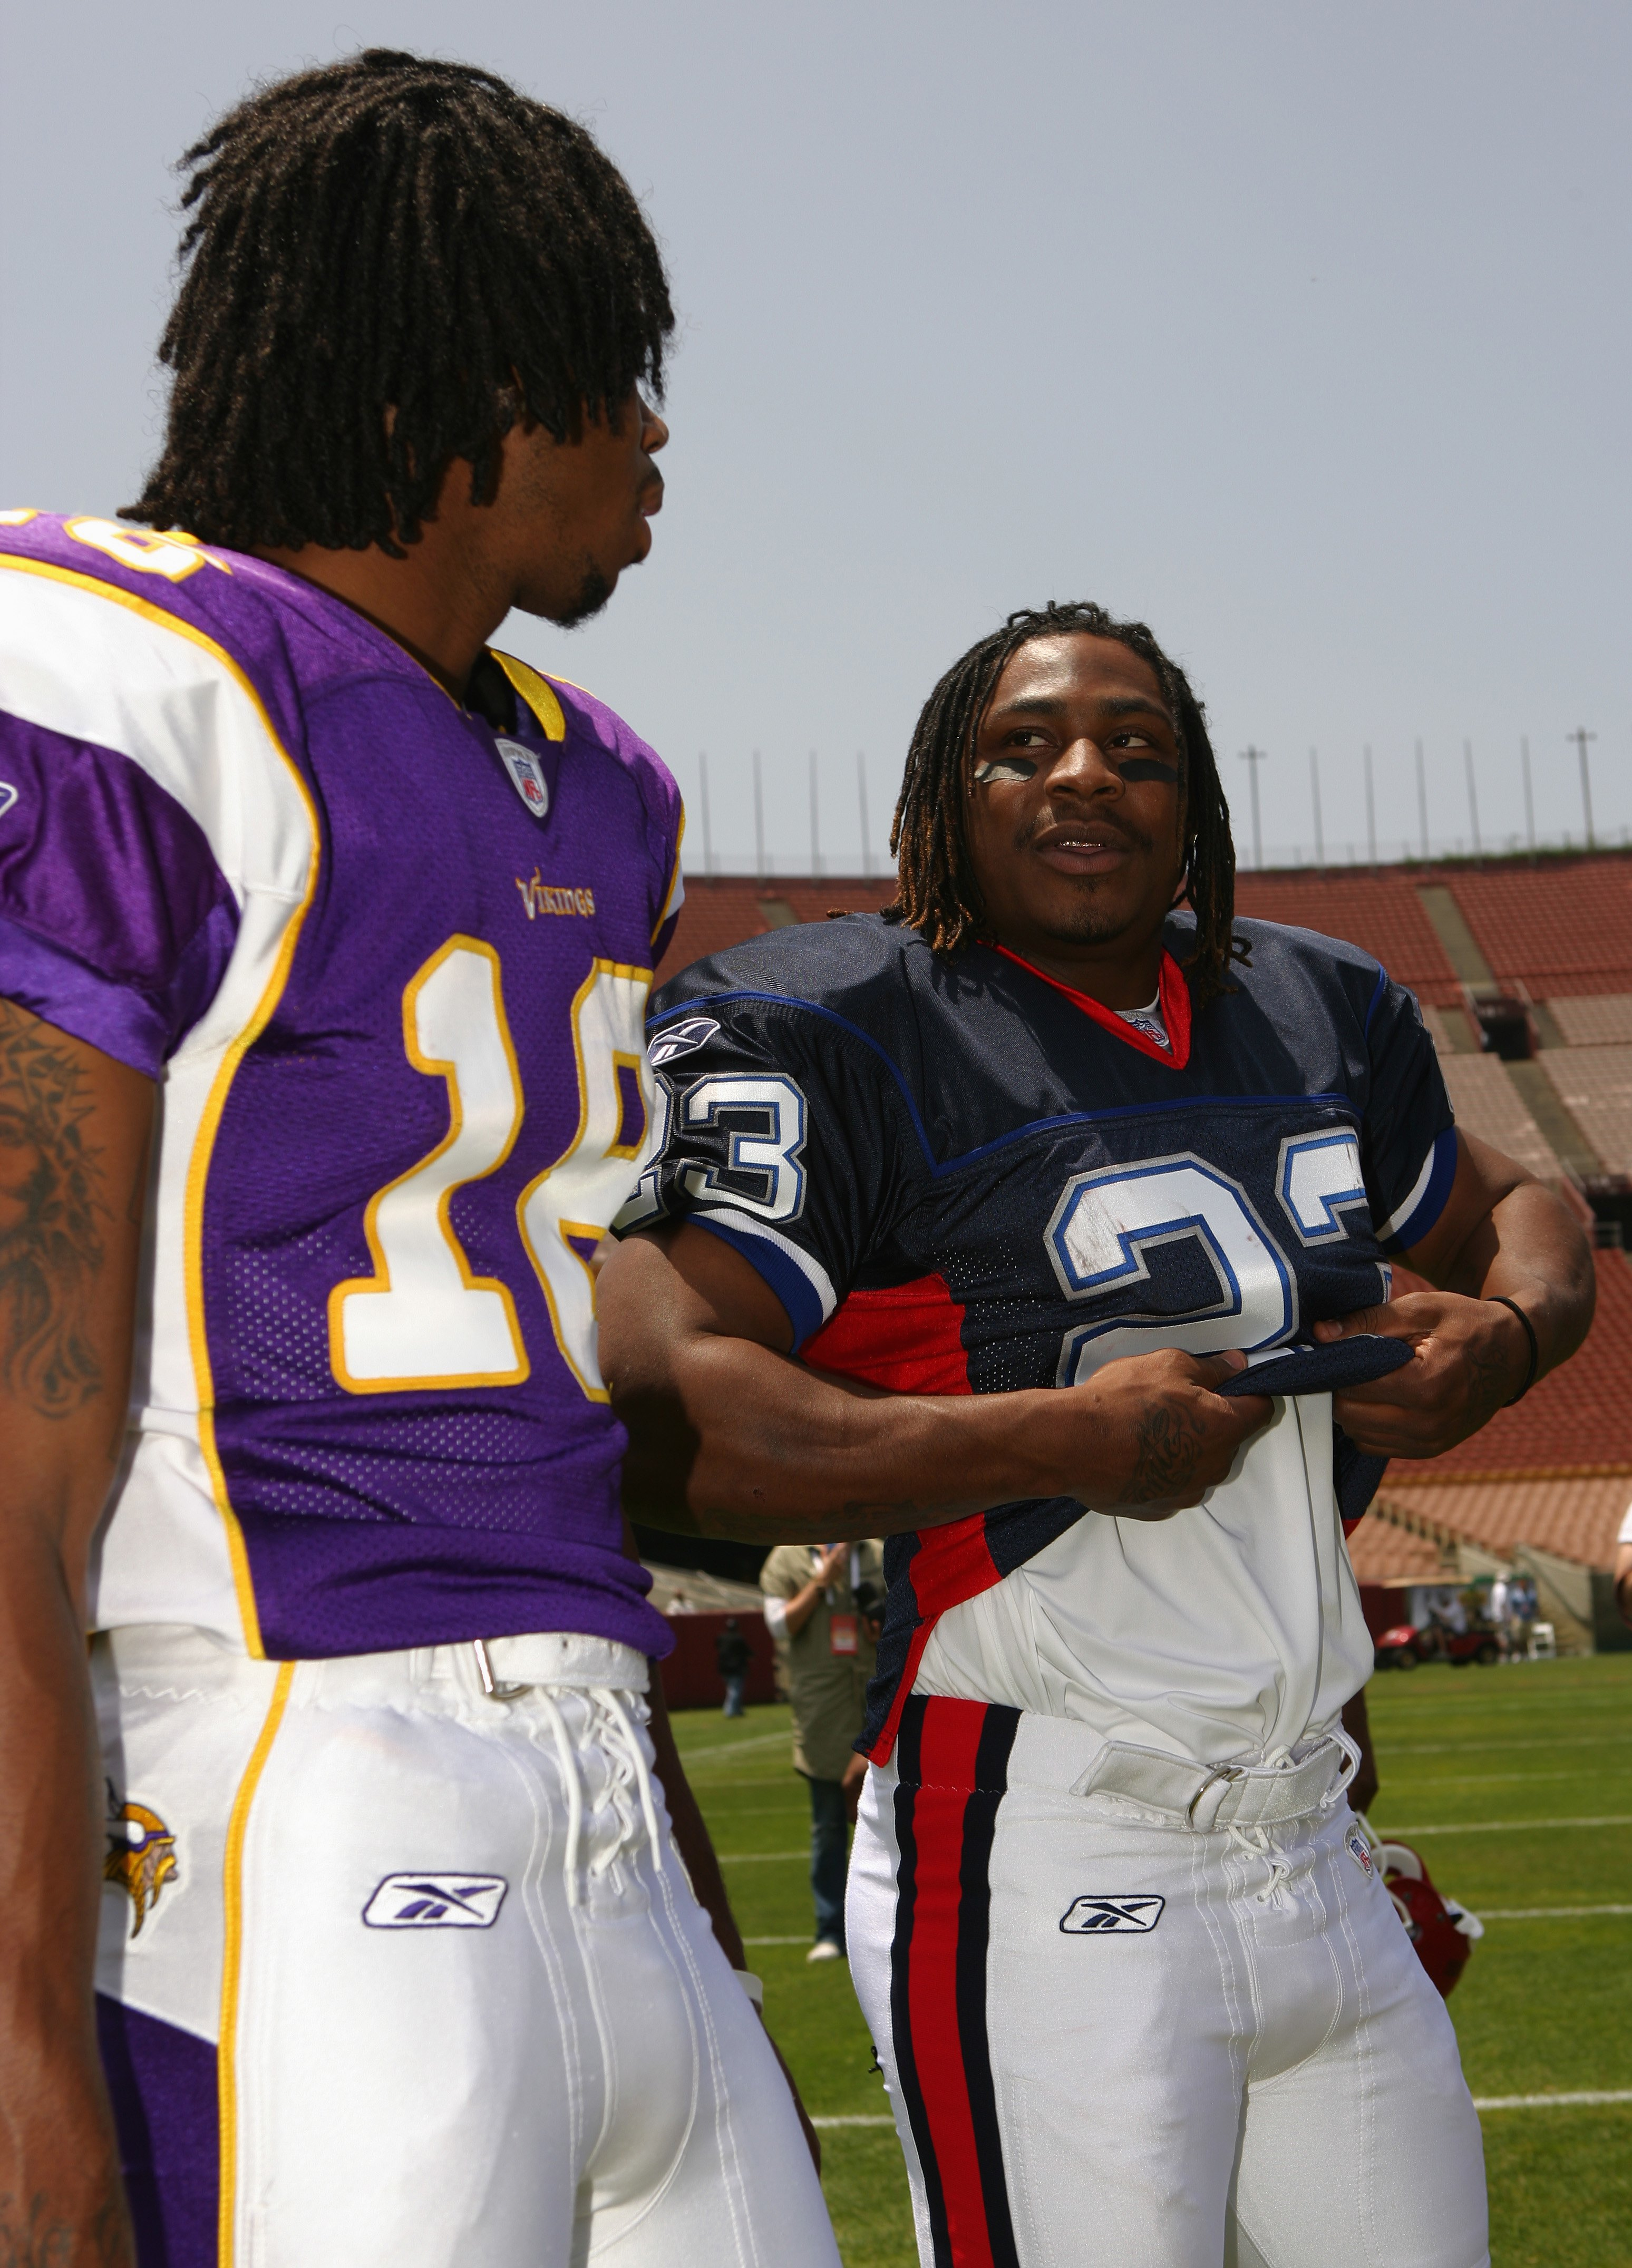 LOS ANGELES, CA - MAY 19: Wide receiver, Sidney Rice #18 of the Minnesota Vikings talks with running back, Marshawn Lynch #23 of the Buffalo Bills at the 2007 NFL Players Rookie Premiere on May 19, 2007 at the Los Angeles Memorial Coliseum in Los Angeles,